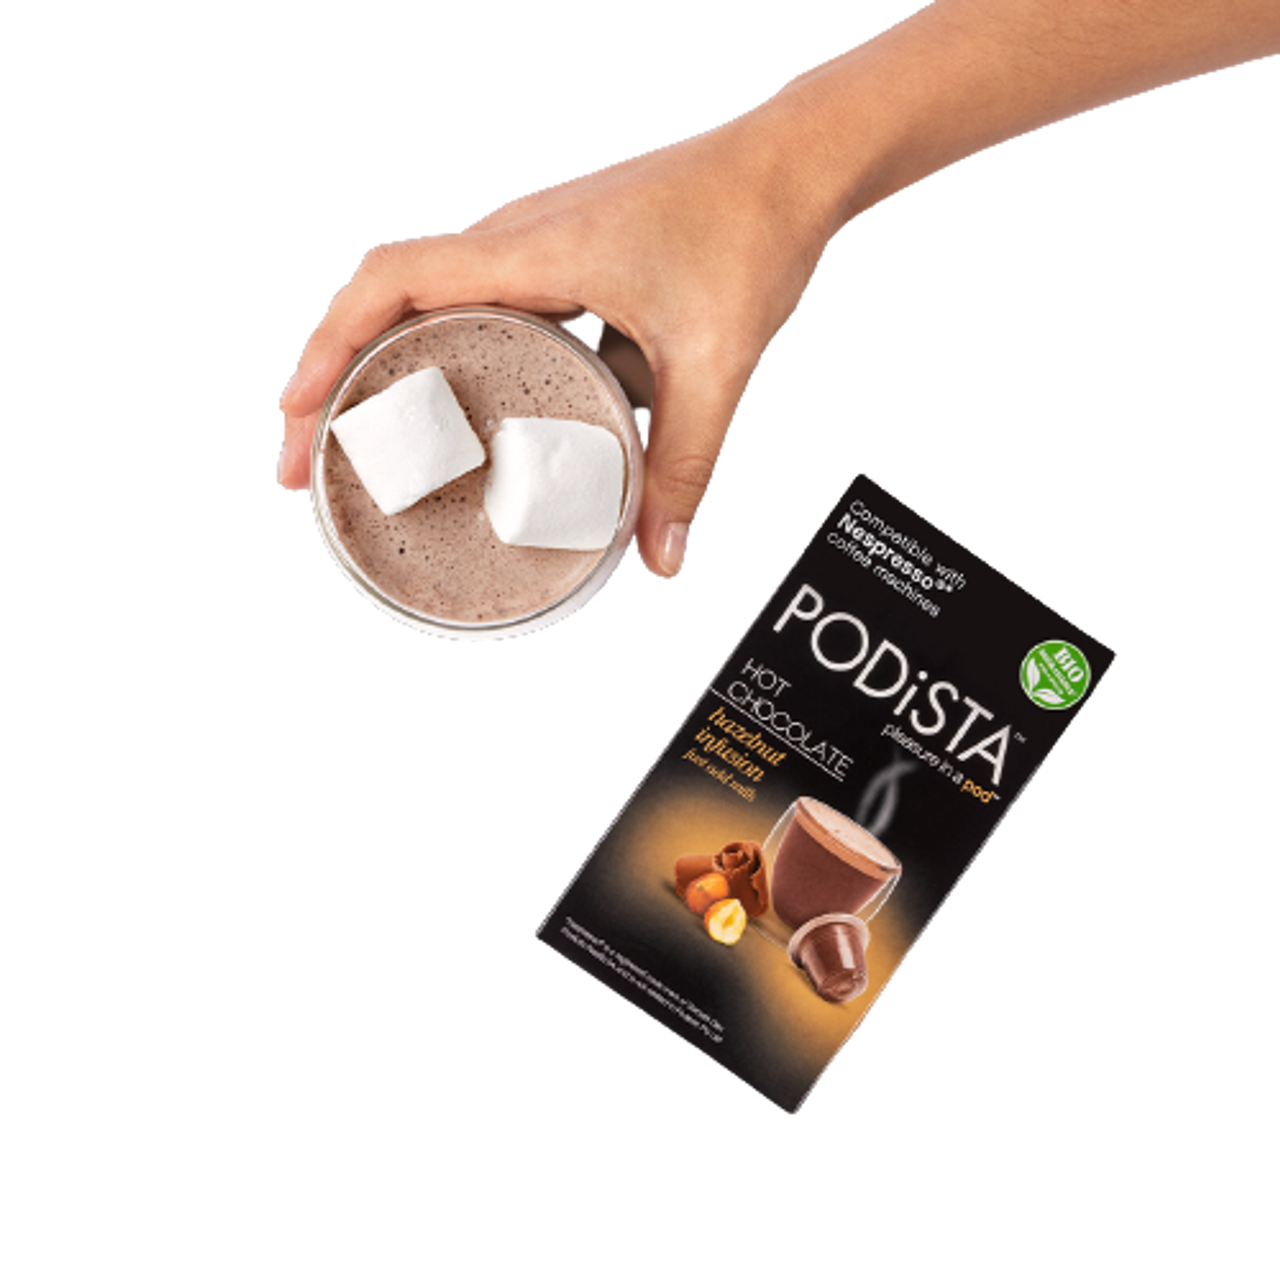 Podista Nespresso Compatible Chocolate hazelnut infusion  10-Count